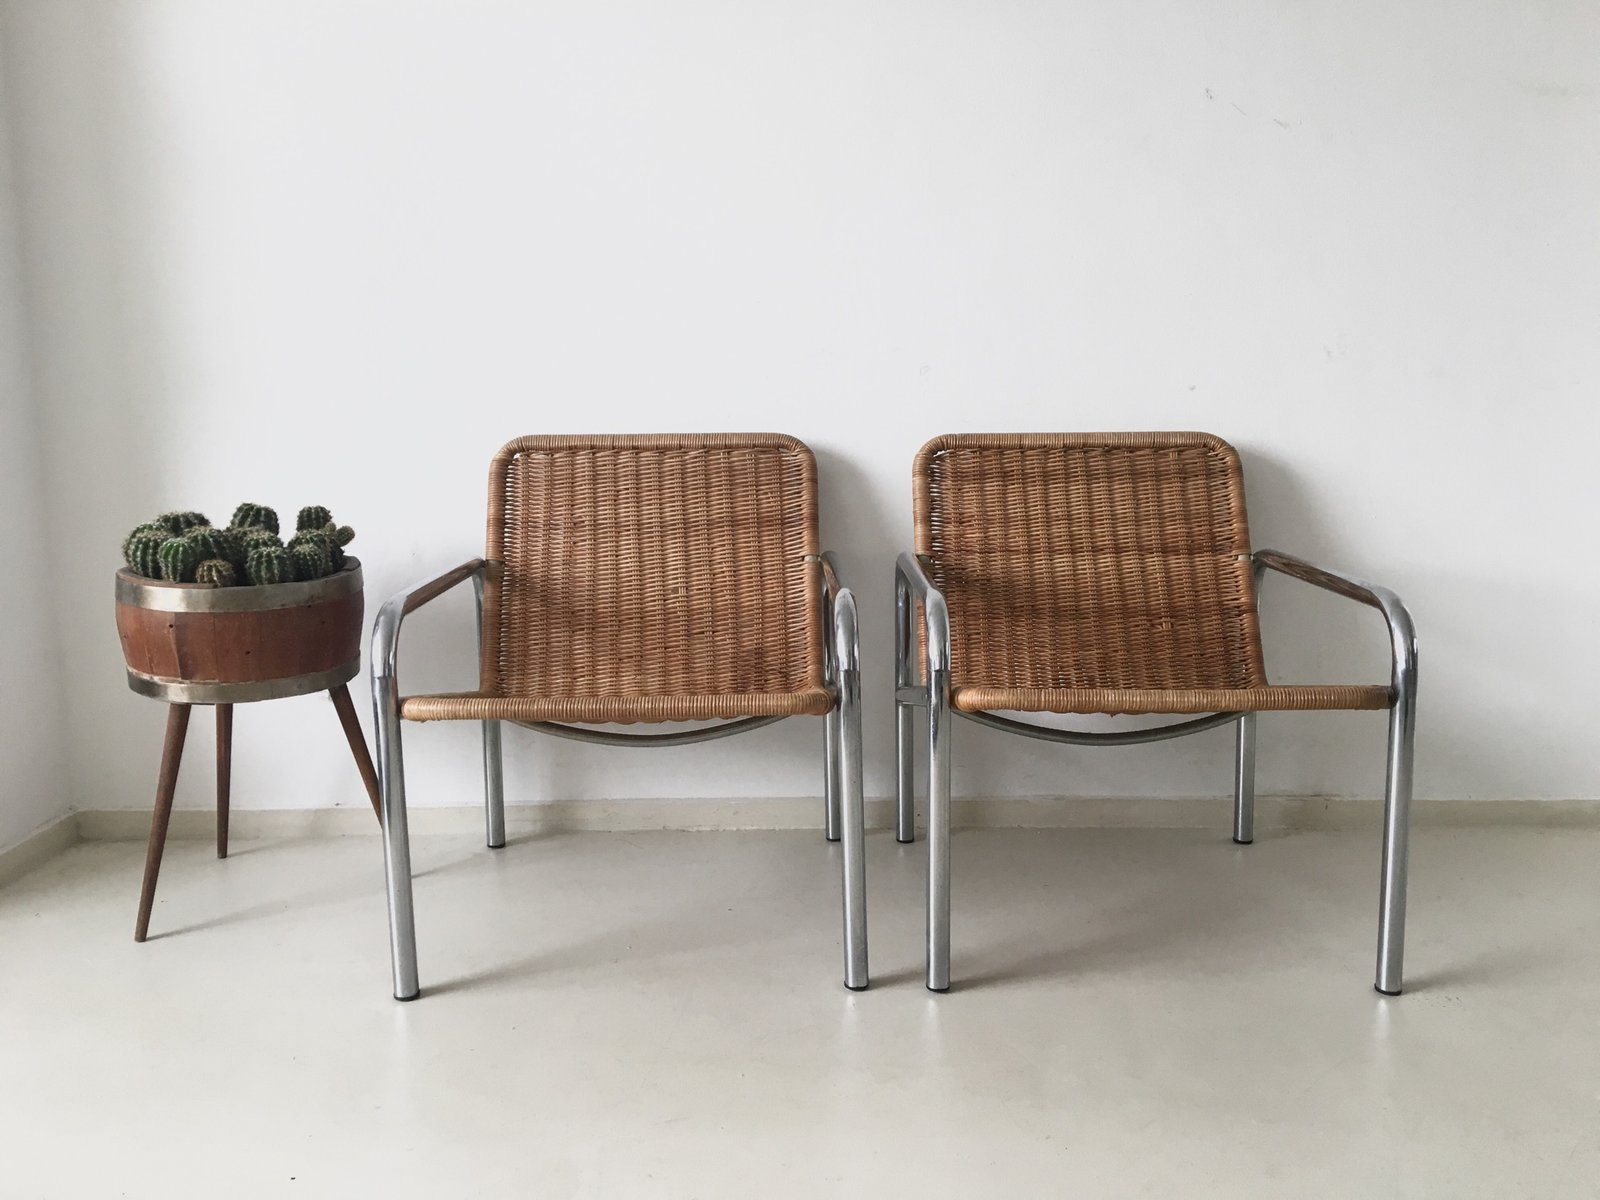 steel lounge chair bjs folding chairs vintage wicker and metal 1960s for sale at